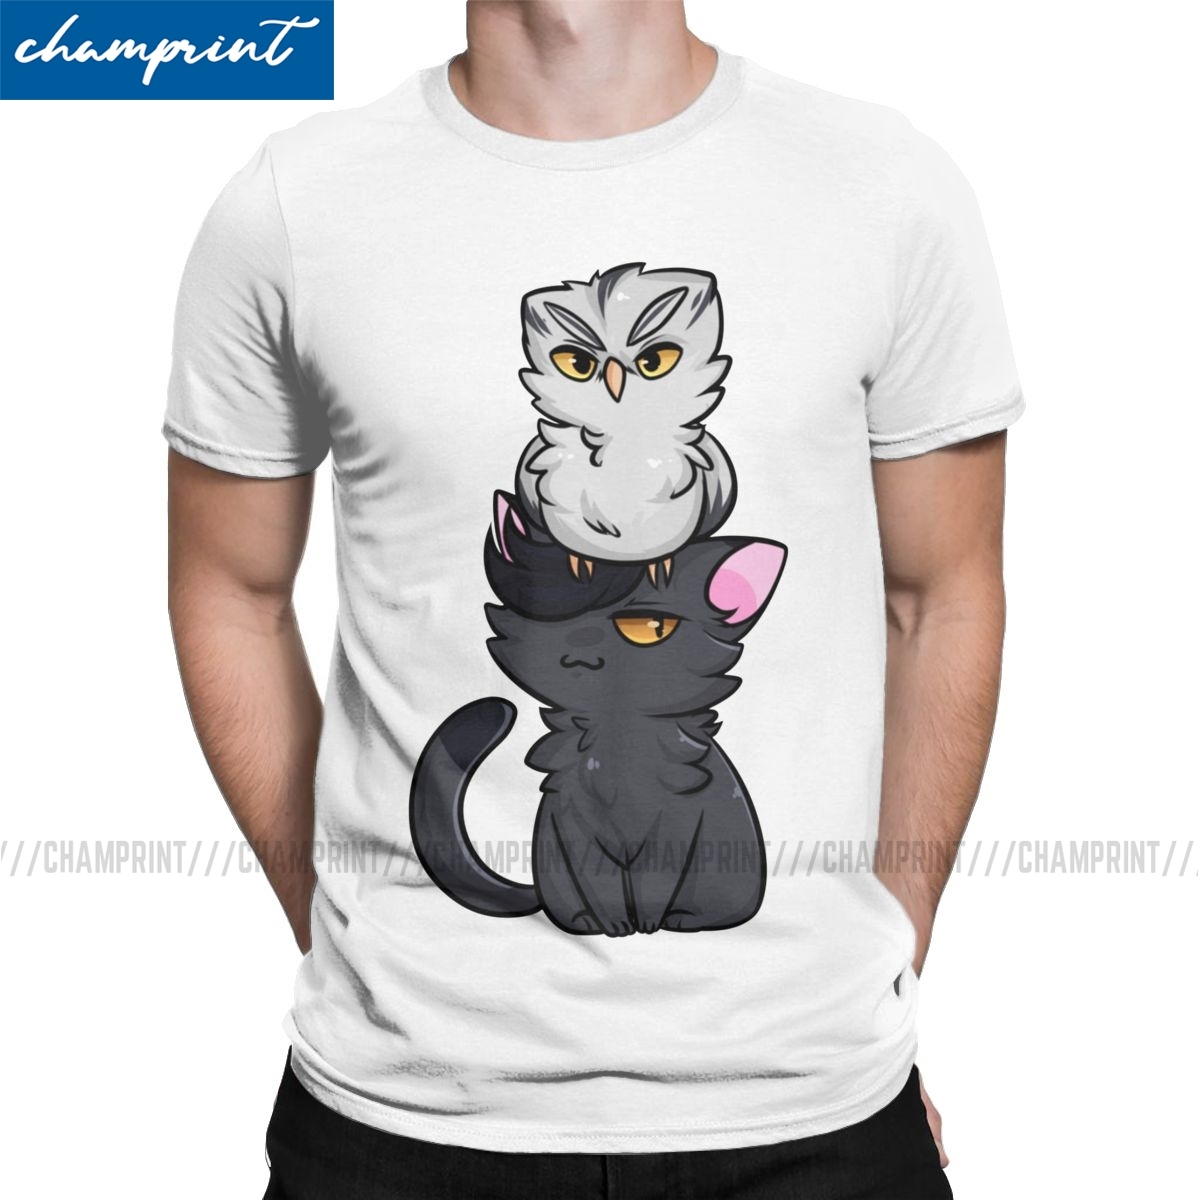 owl and pussycat t shirt men haikyuu anime bokuto volleyball manga funny pure cotton tees round collar t shirts new arrival tops